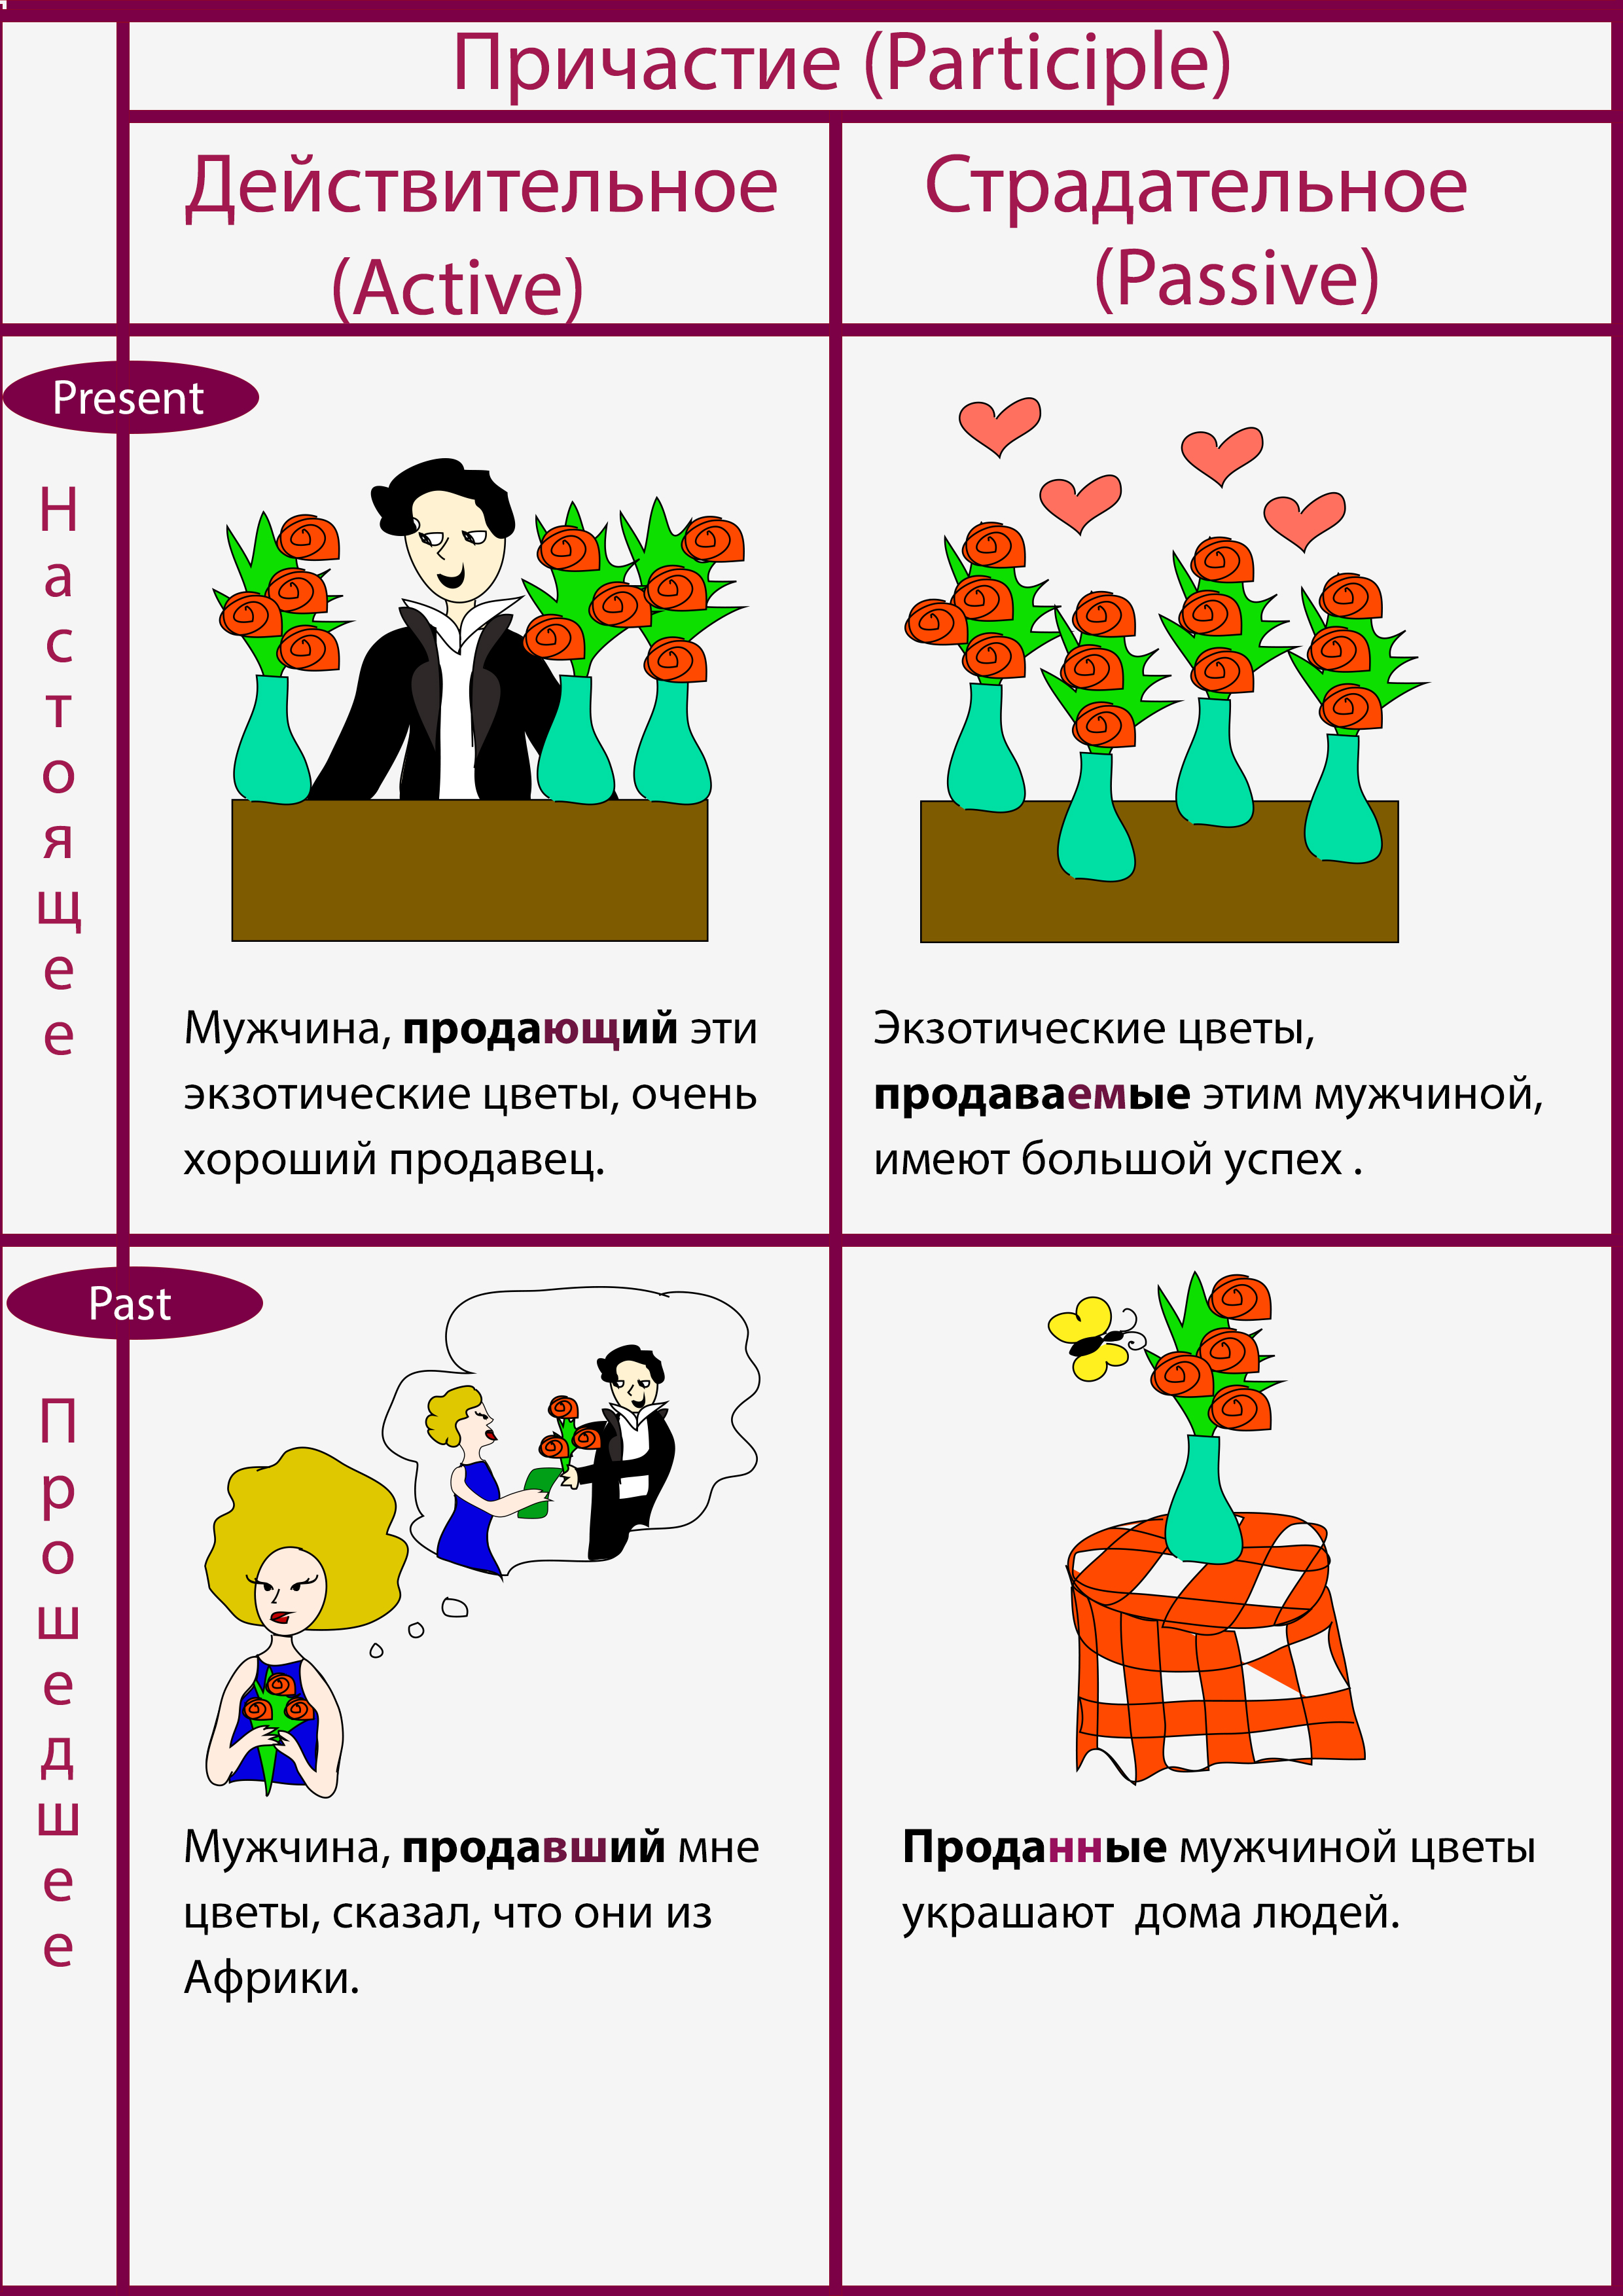 active and passive participle in Russian